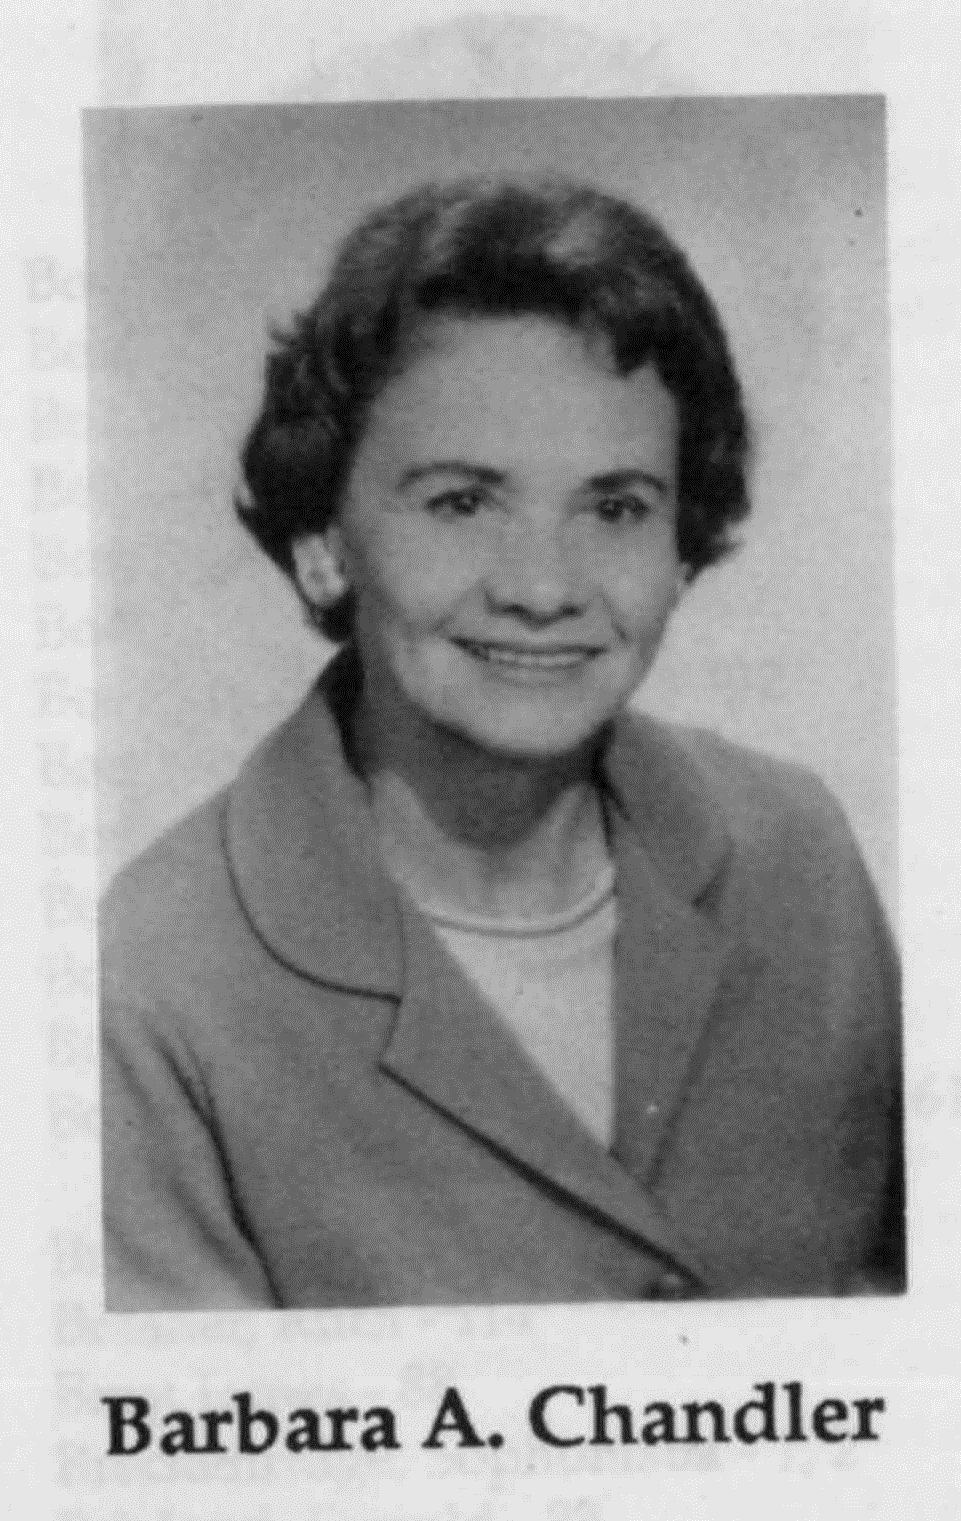 Barbara Chandler